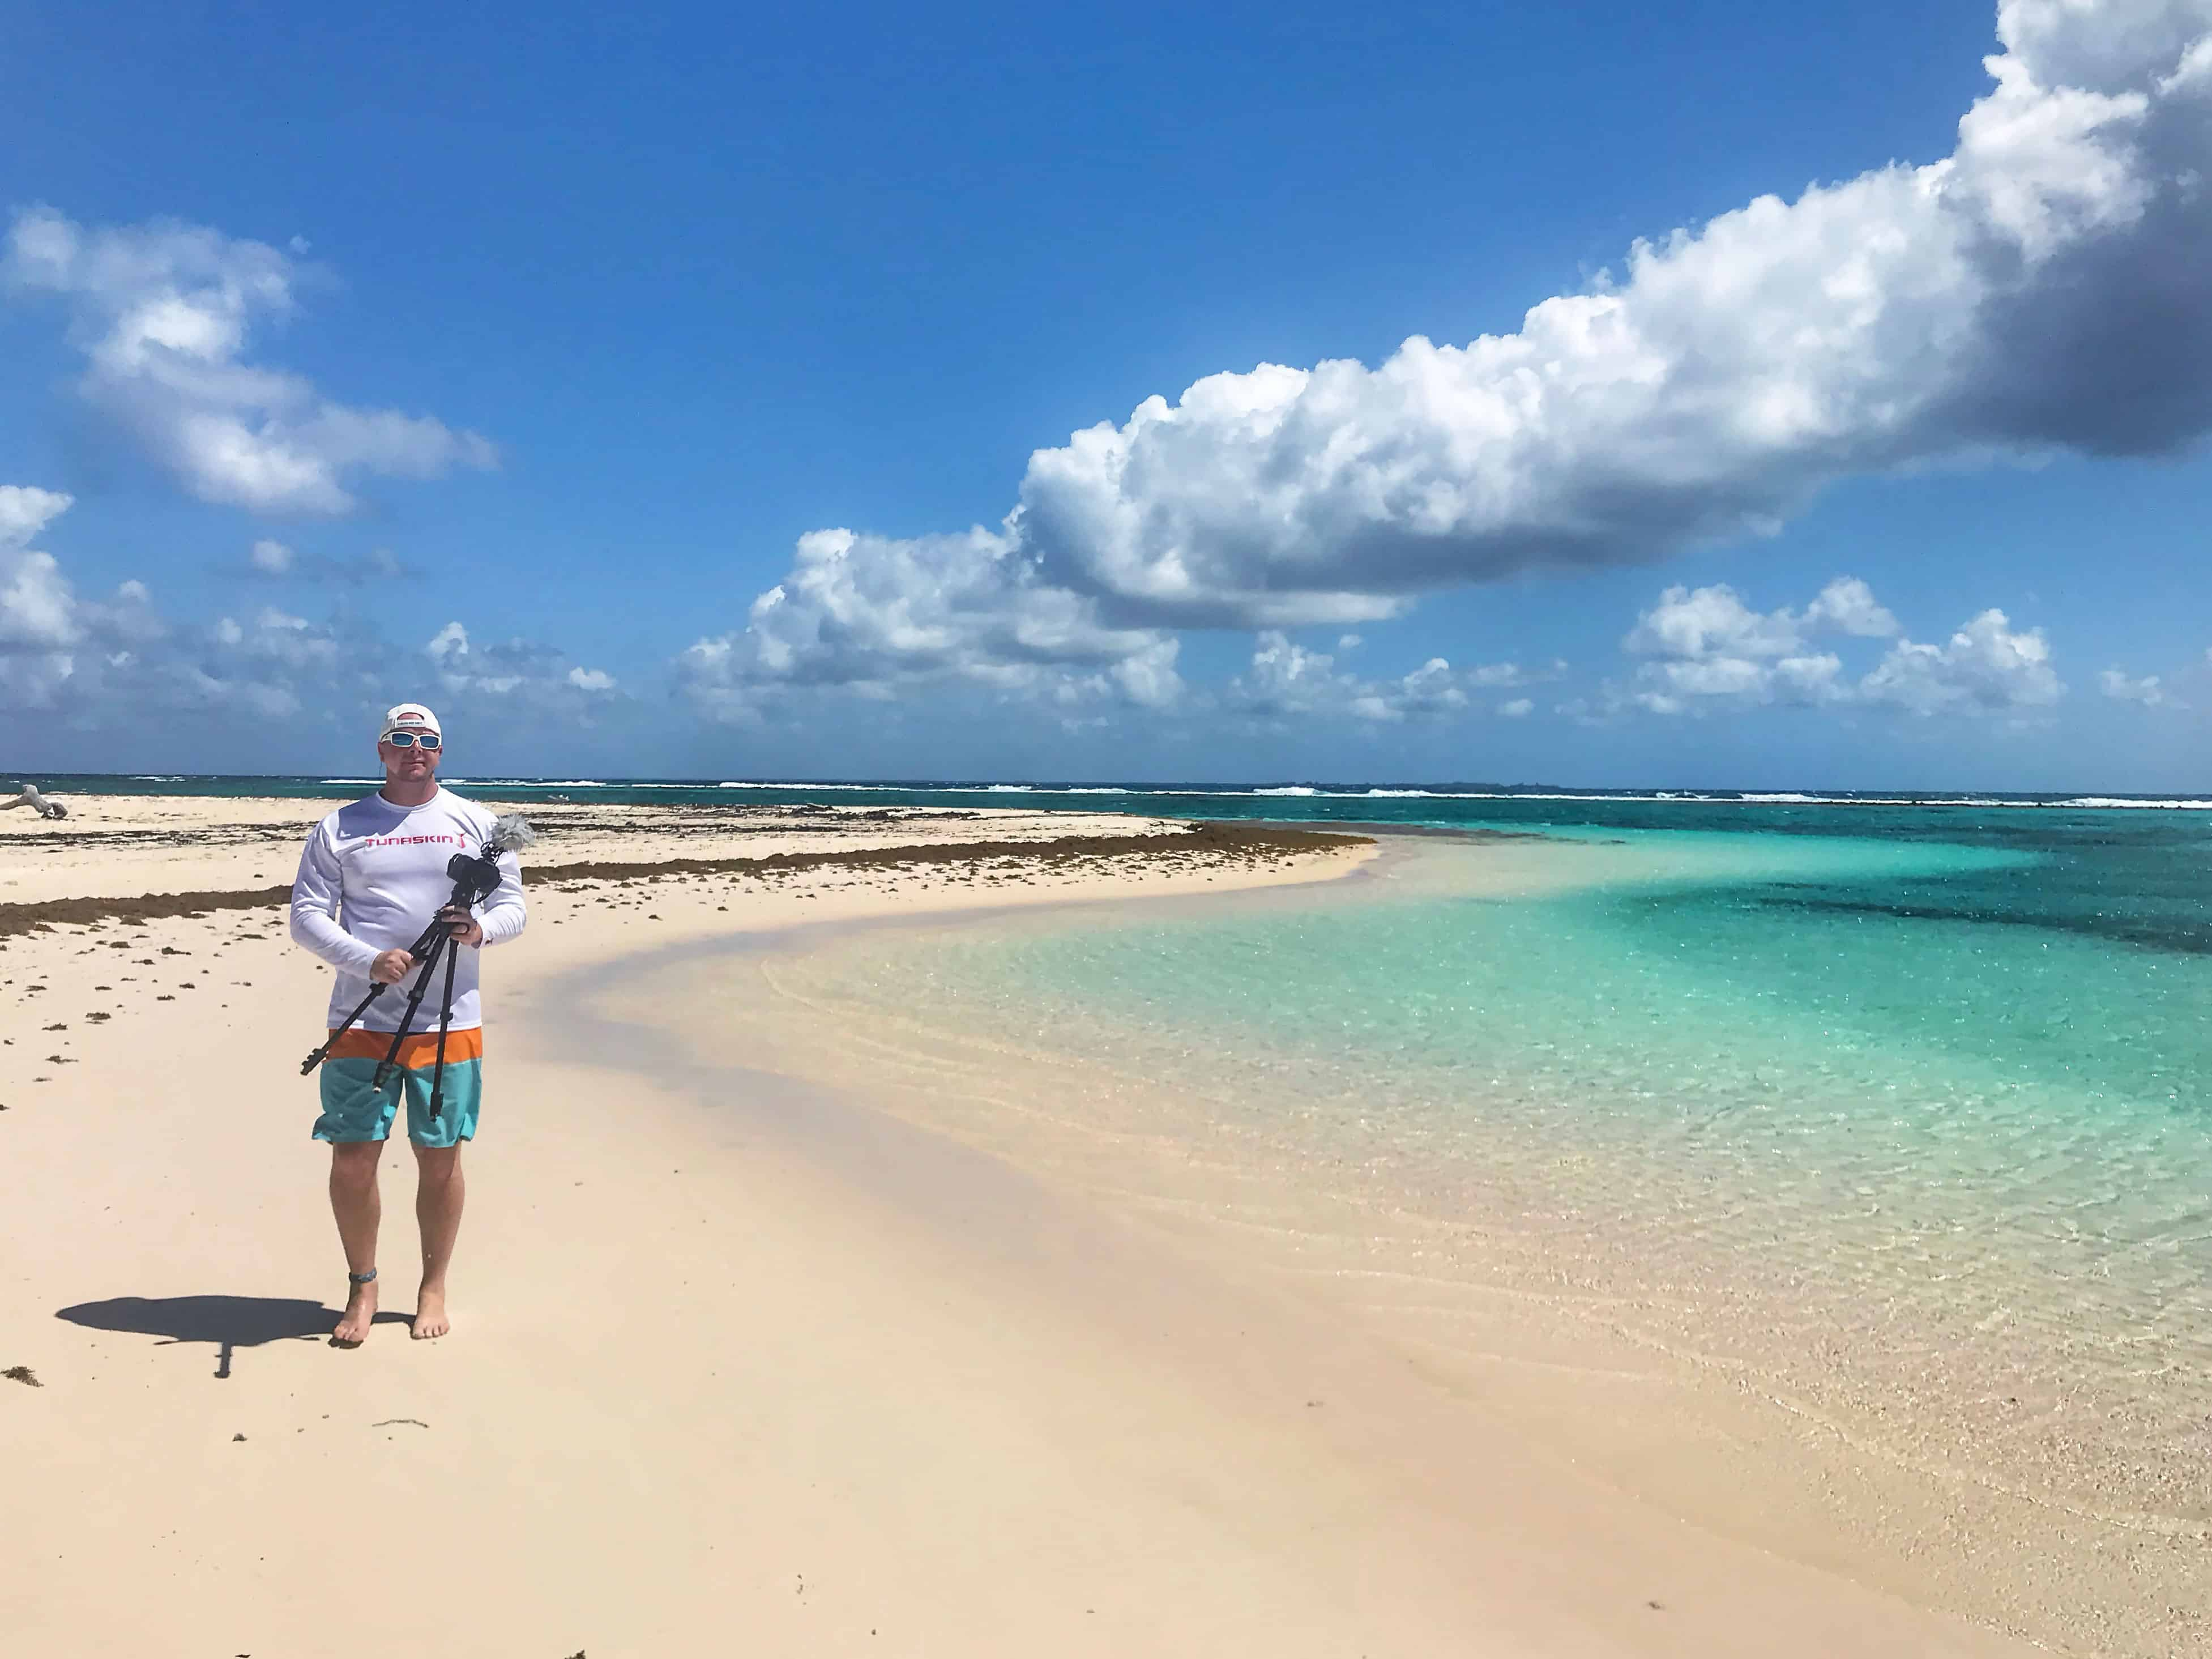 Point Of Sand, Little Cayman, Cayman Islands, Beach